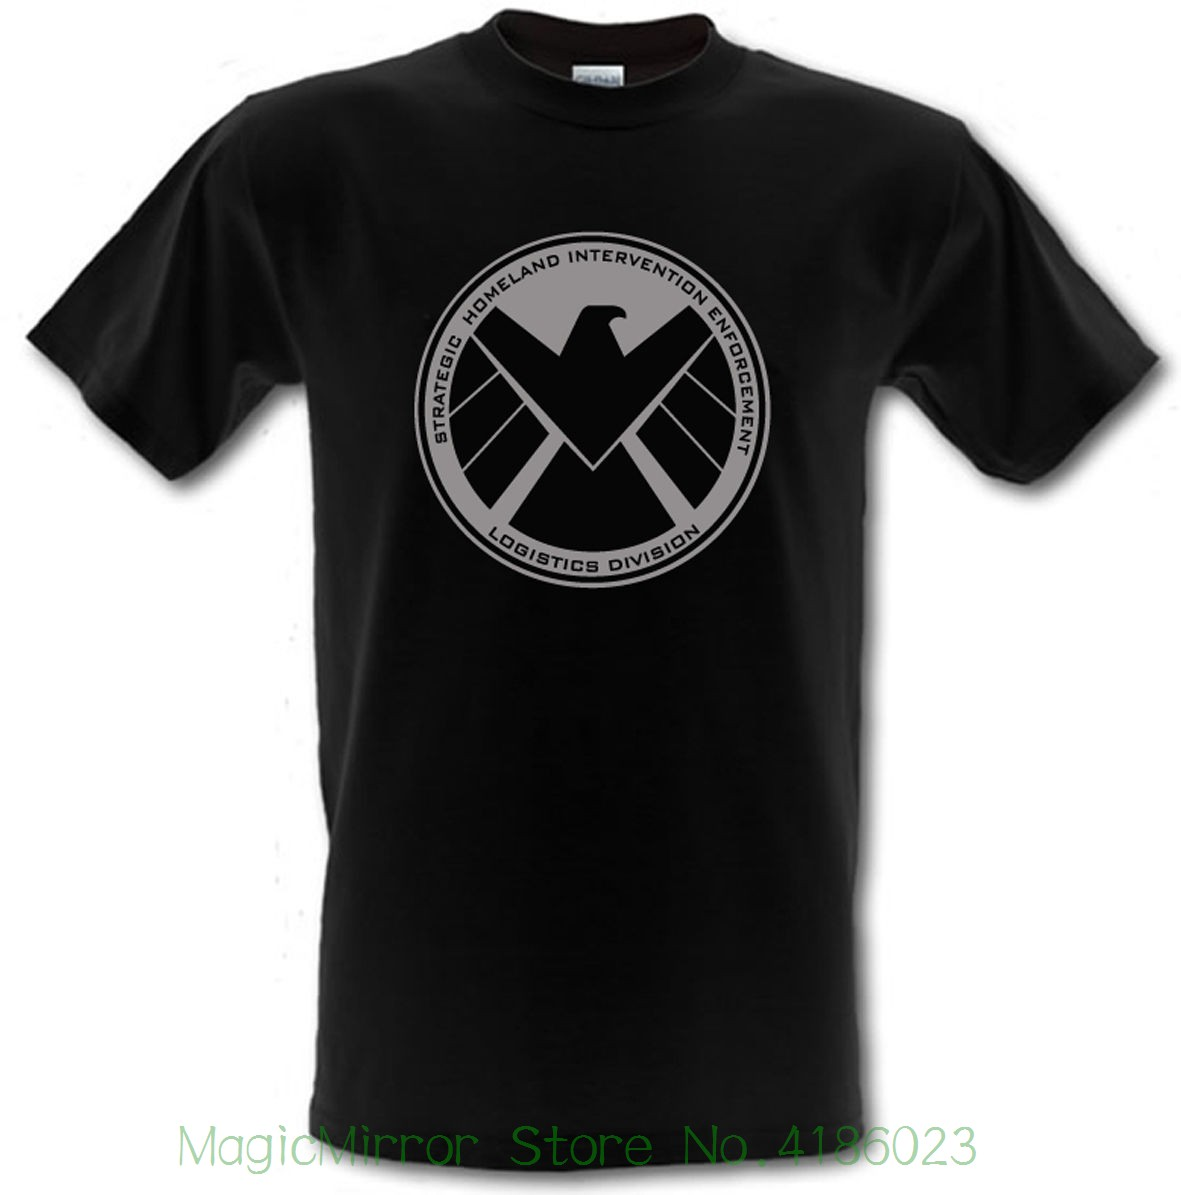 Agents Of S.h.i.e.l.d Shield Superhero Heavy Cotton T-shirt Sizes Small - Xxl Round Neck Clothes